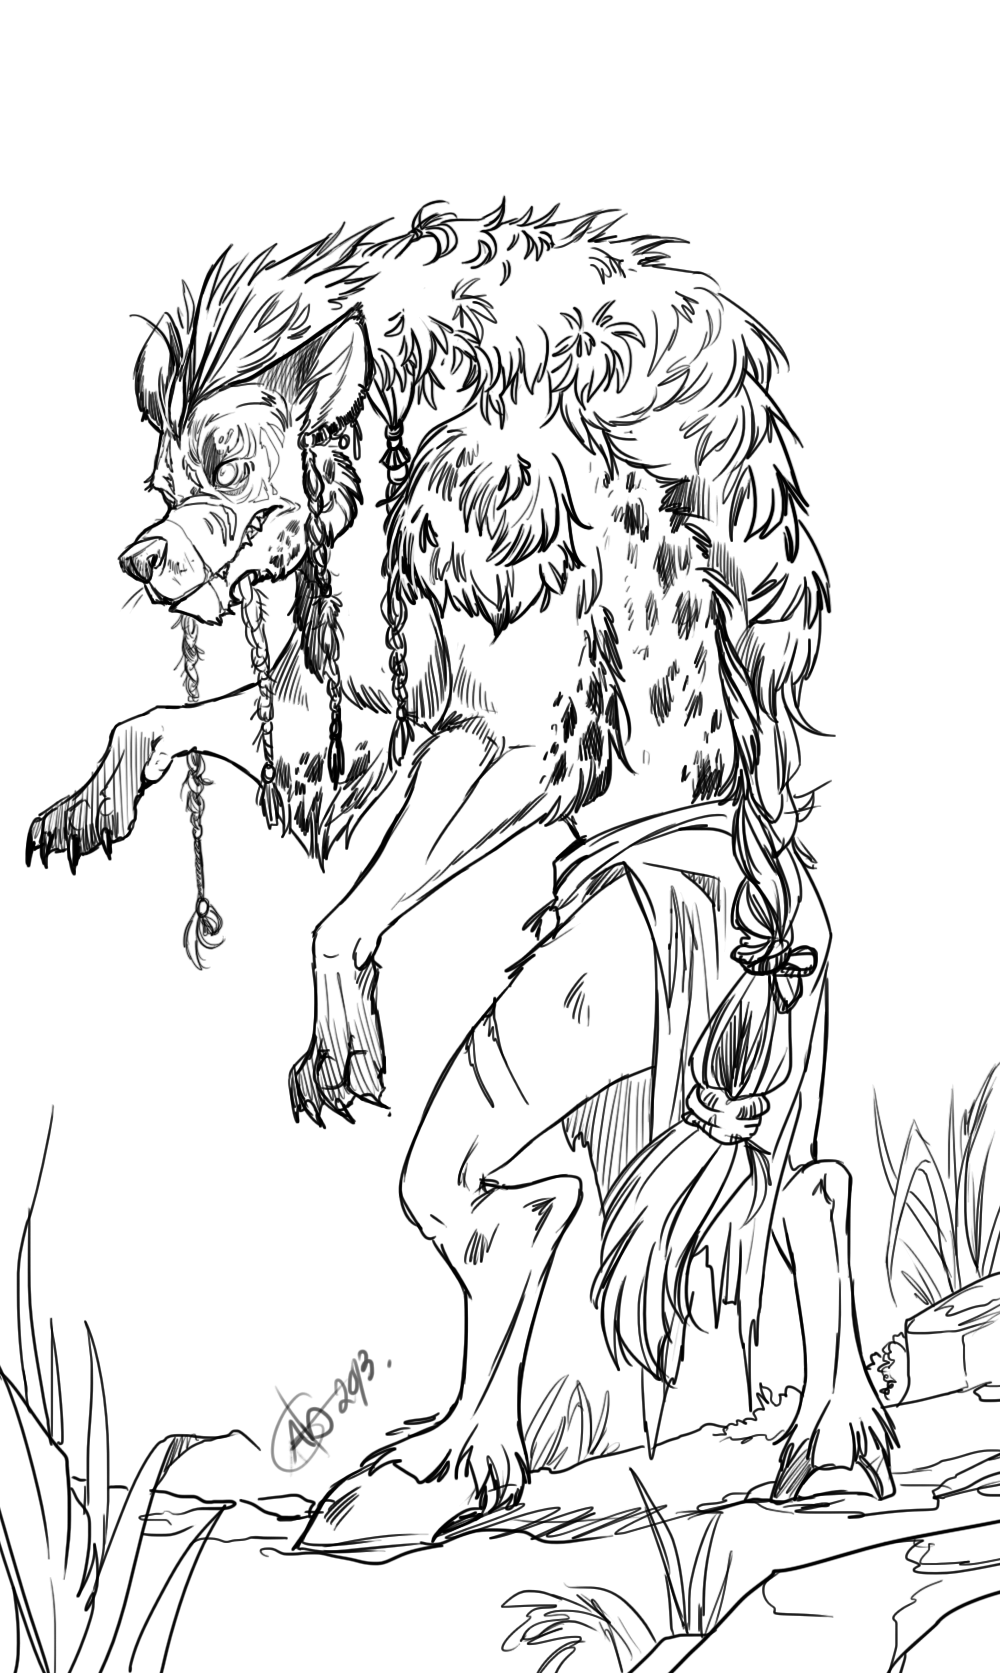 Hyena Coloring Pages Scary Image For Adult | Coloring.Cosplaypic.com